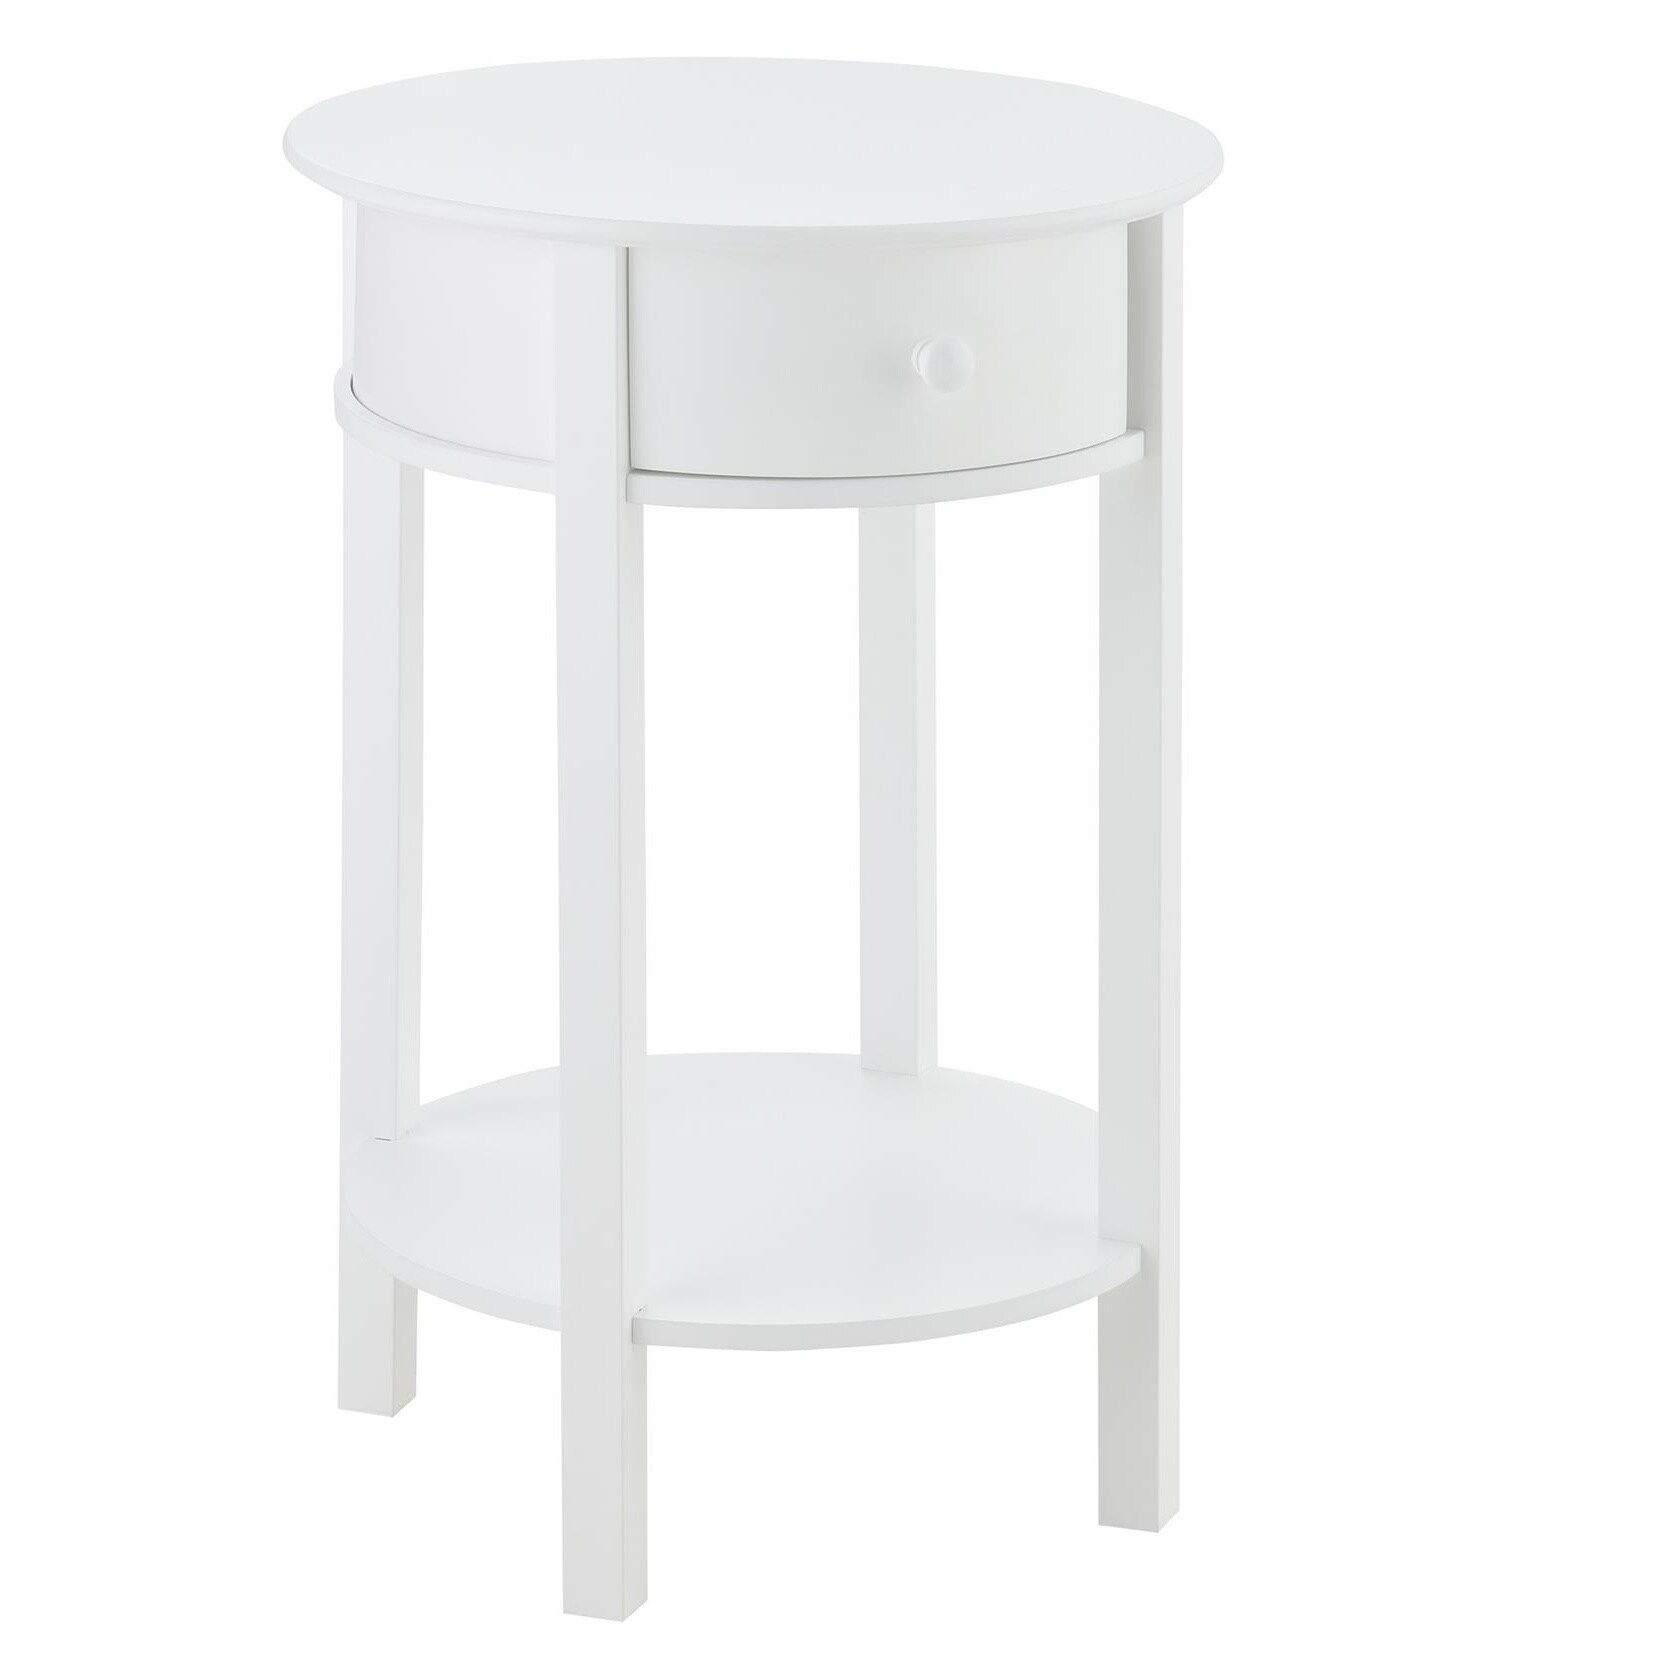 white round end table. Shop Avenue Greene Adams White Wood Round End Table - On Sale Free Shipping Today Overstock.com 20186929